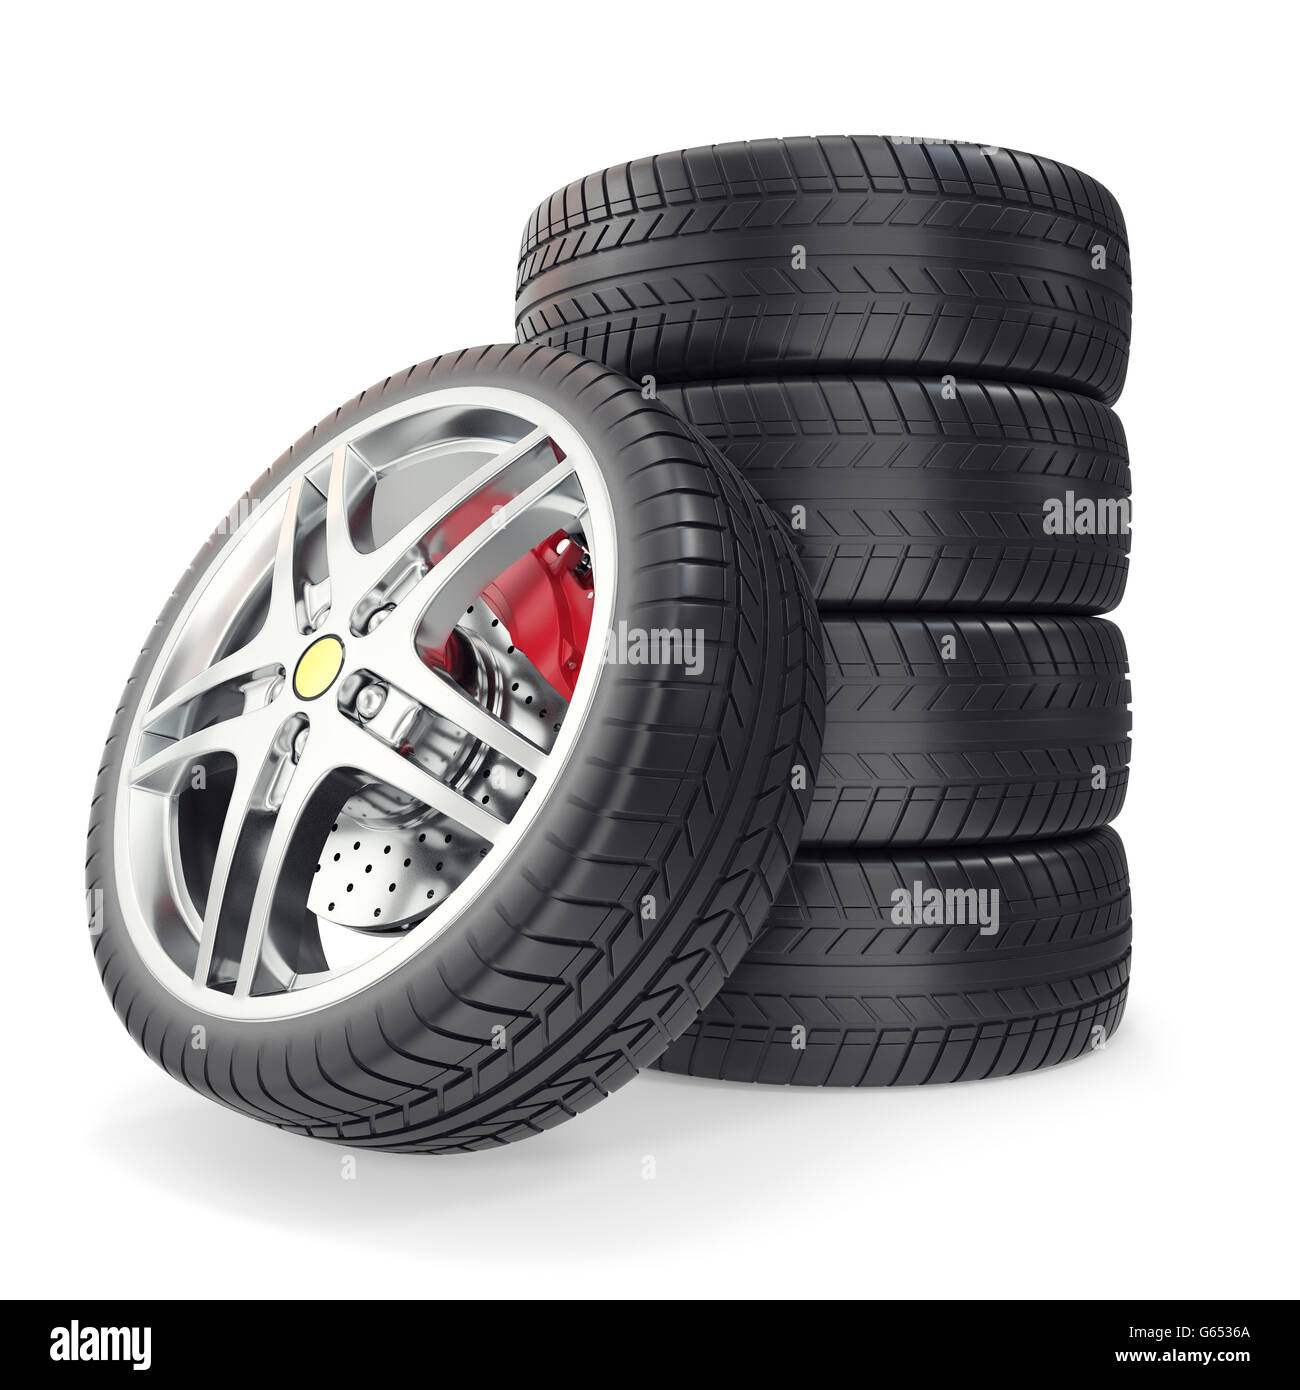 Pile Car wheels on white background. 3d illustration - Stock Image